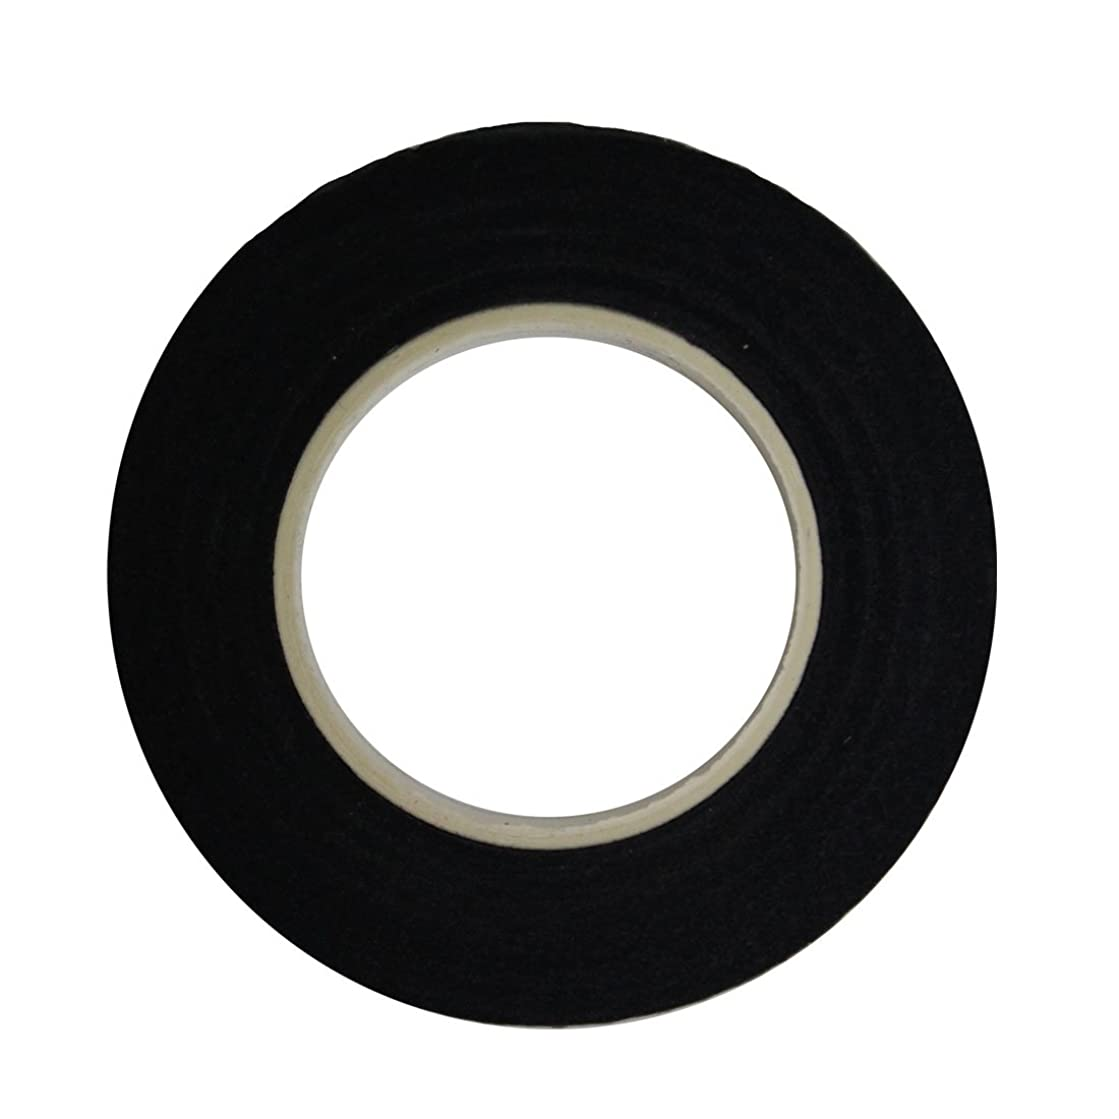 Decora 1 roll 1/2-inch by 30 Yard Black Floral Tape for Bouquet Stem Wrap Floral Arranging Craft Projects Corsages, Wedding Bouquet